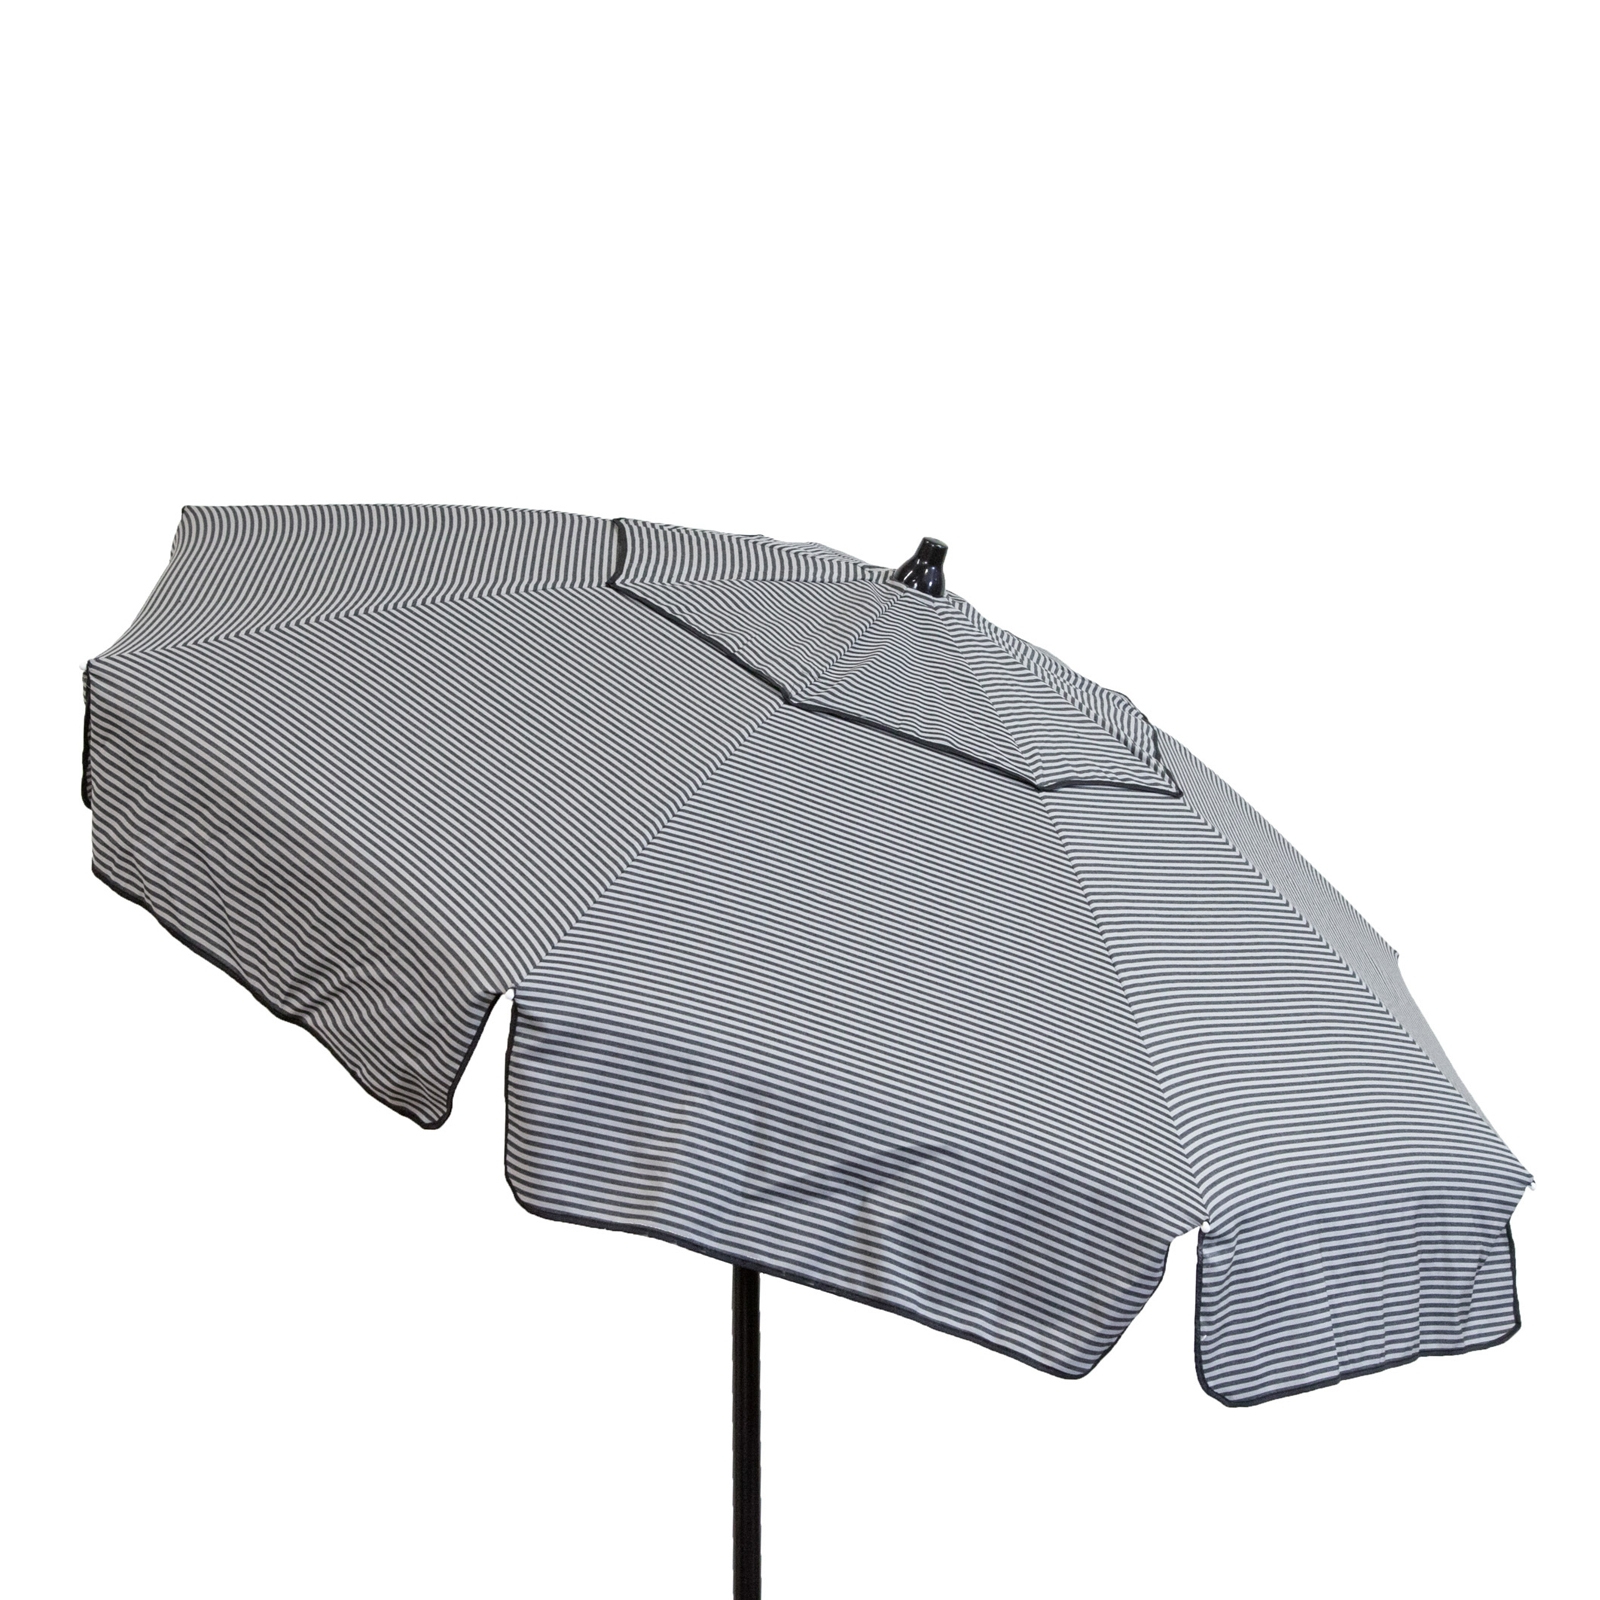 Preferred 6Ft Home Patio Tilt Market Umbrella Classic Italian Style, (Many Colors) Within Italian Market Umbrellas (View 16 of 20)